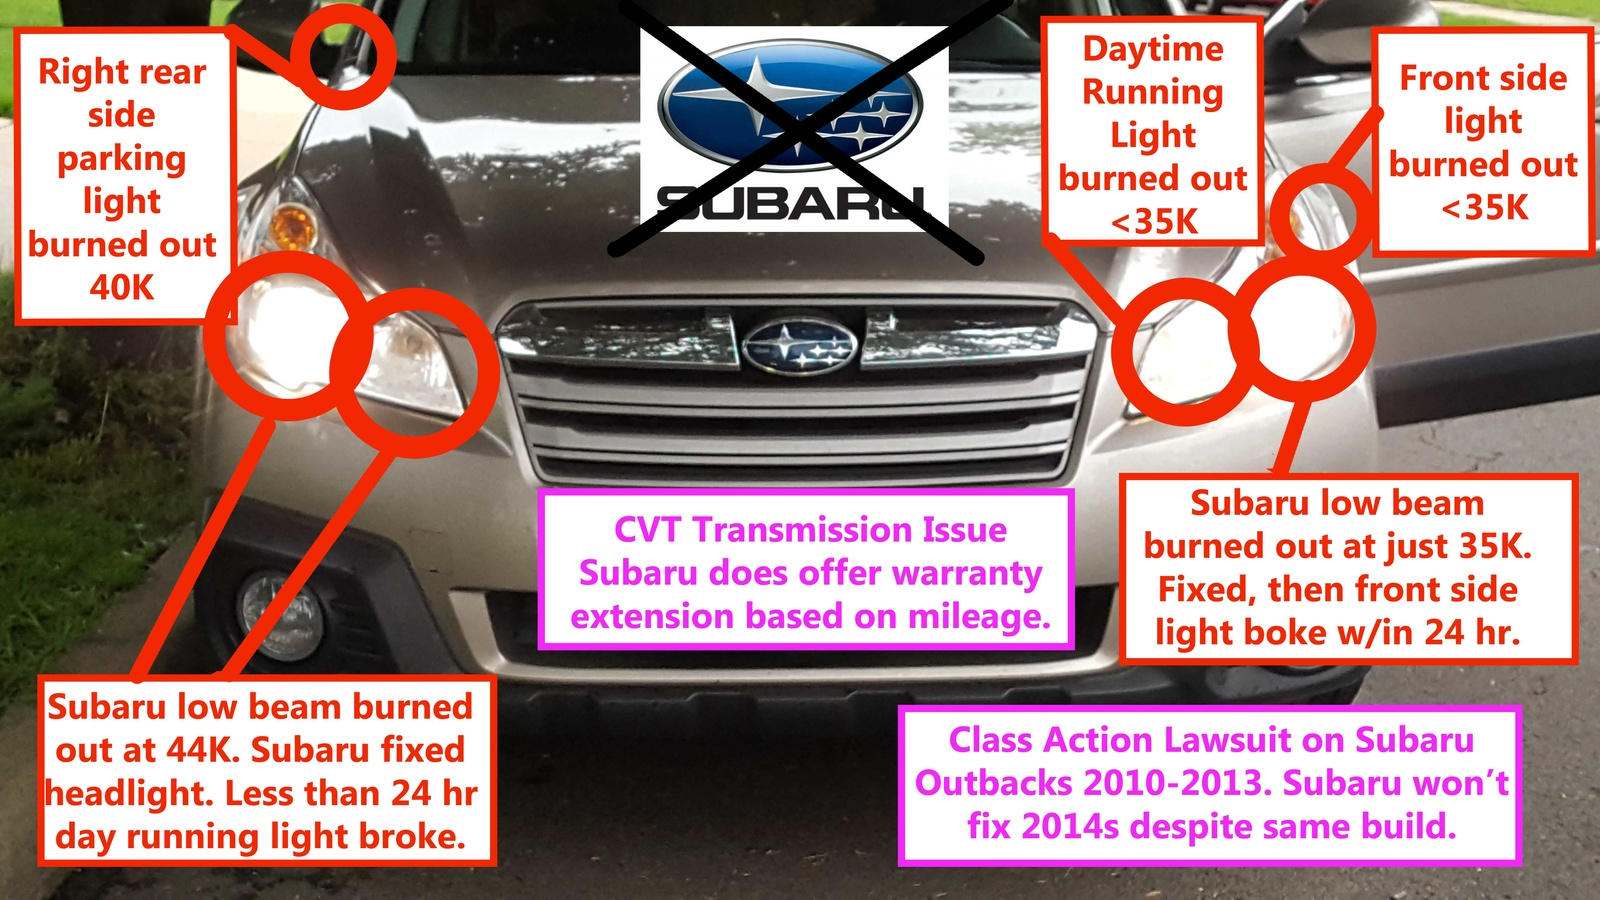 Subaru Outback Questions 2014 Constantly Burned Out Remote Starter Diagram Install Trailer Hitch And Has 3 Usb Flashes Just Waiting For Next Special Surprise Would Not Recommend A Or To Anyone